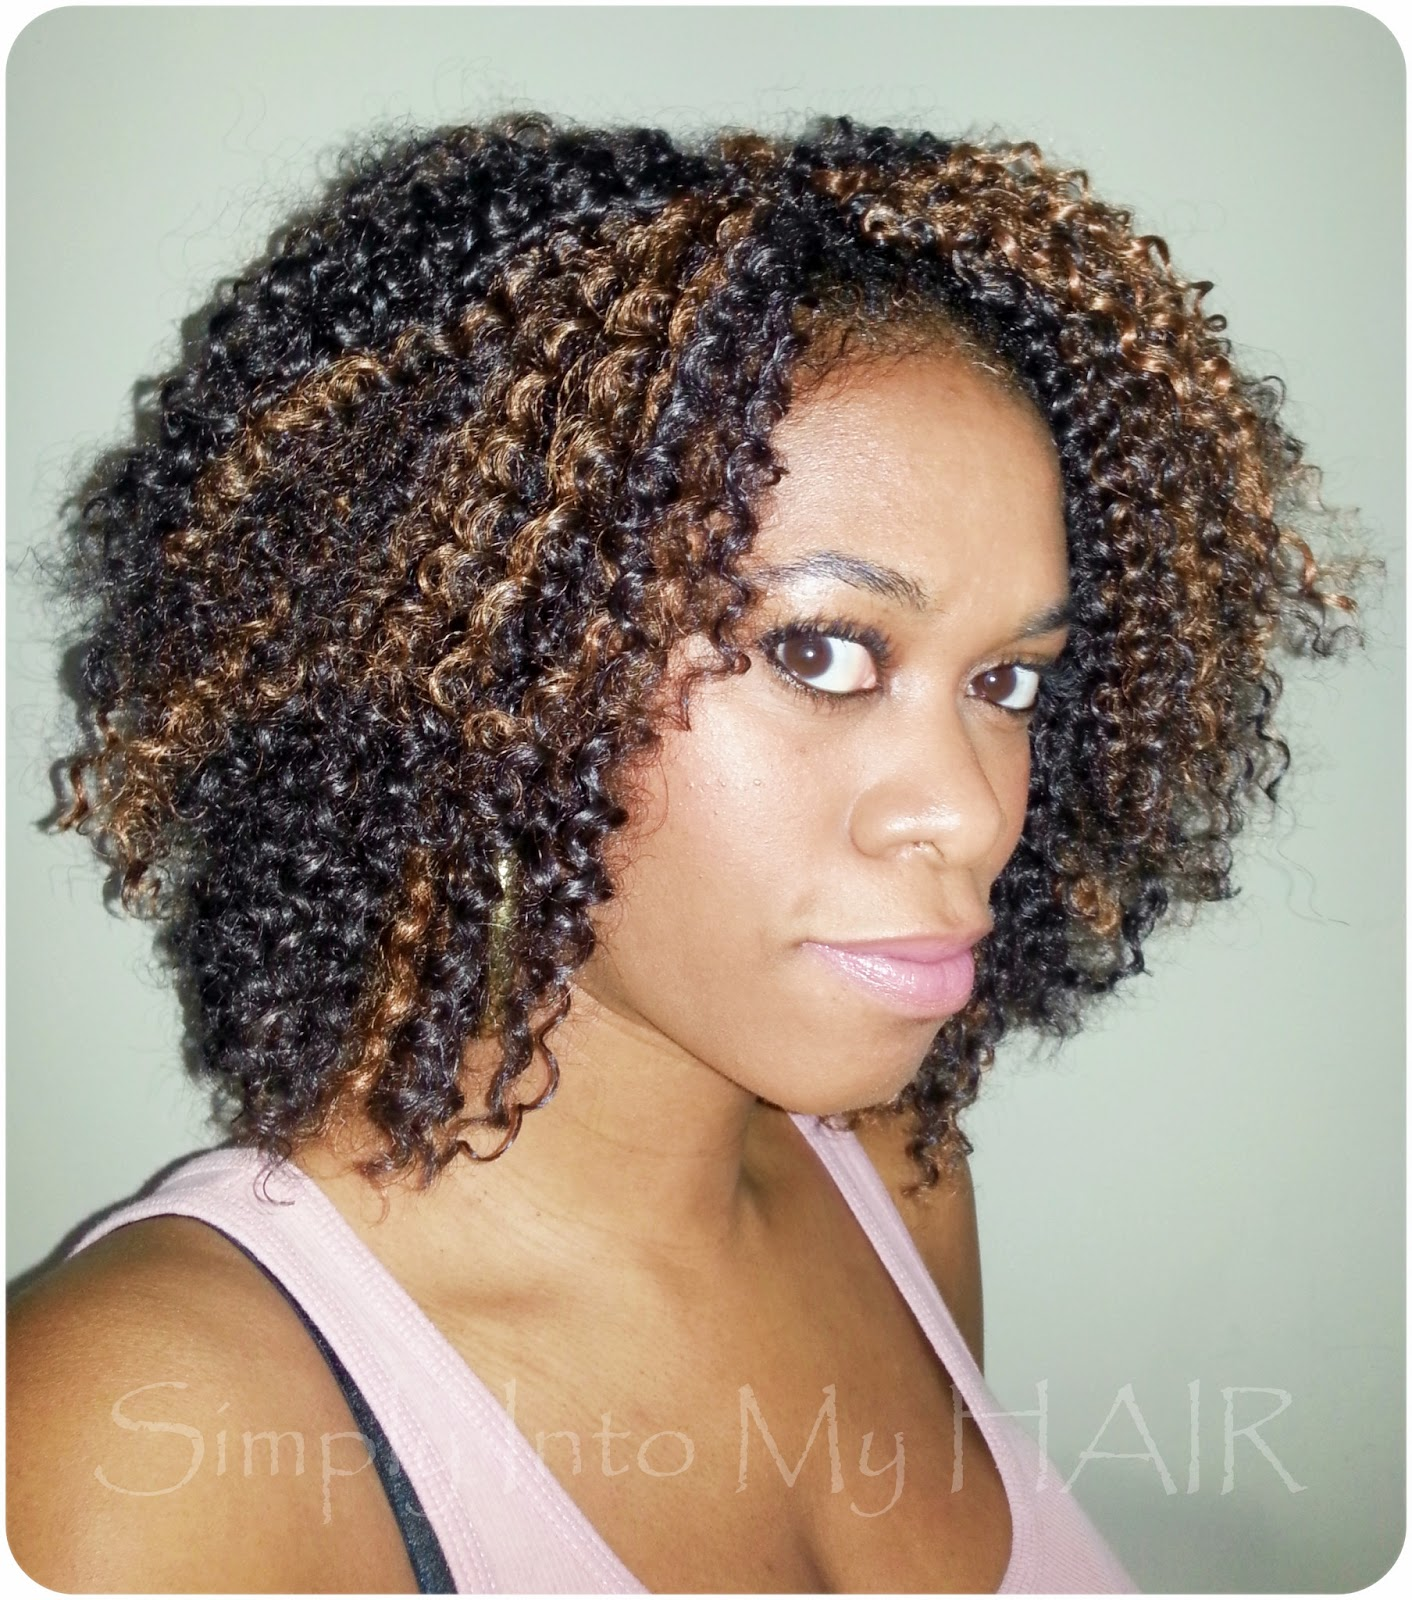 Crochet Hair On Pinterest : Pin Crochet Braids on Pinterest